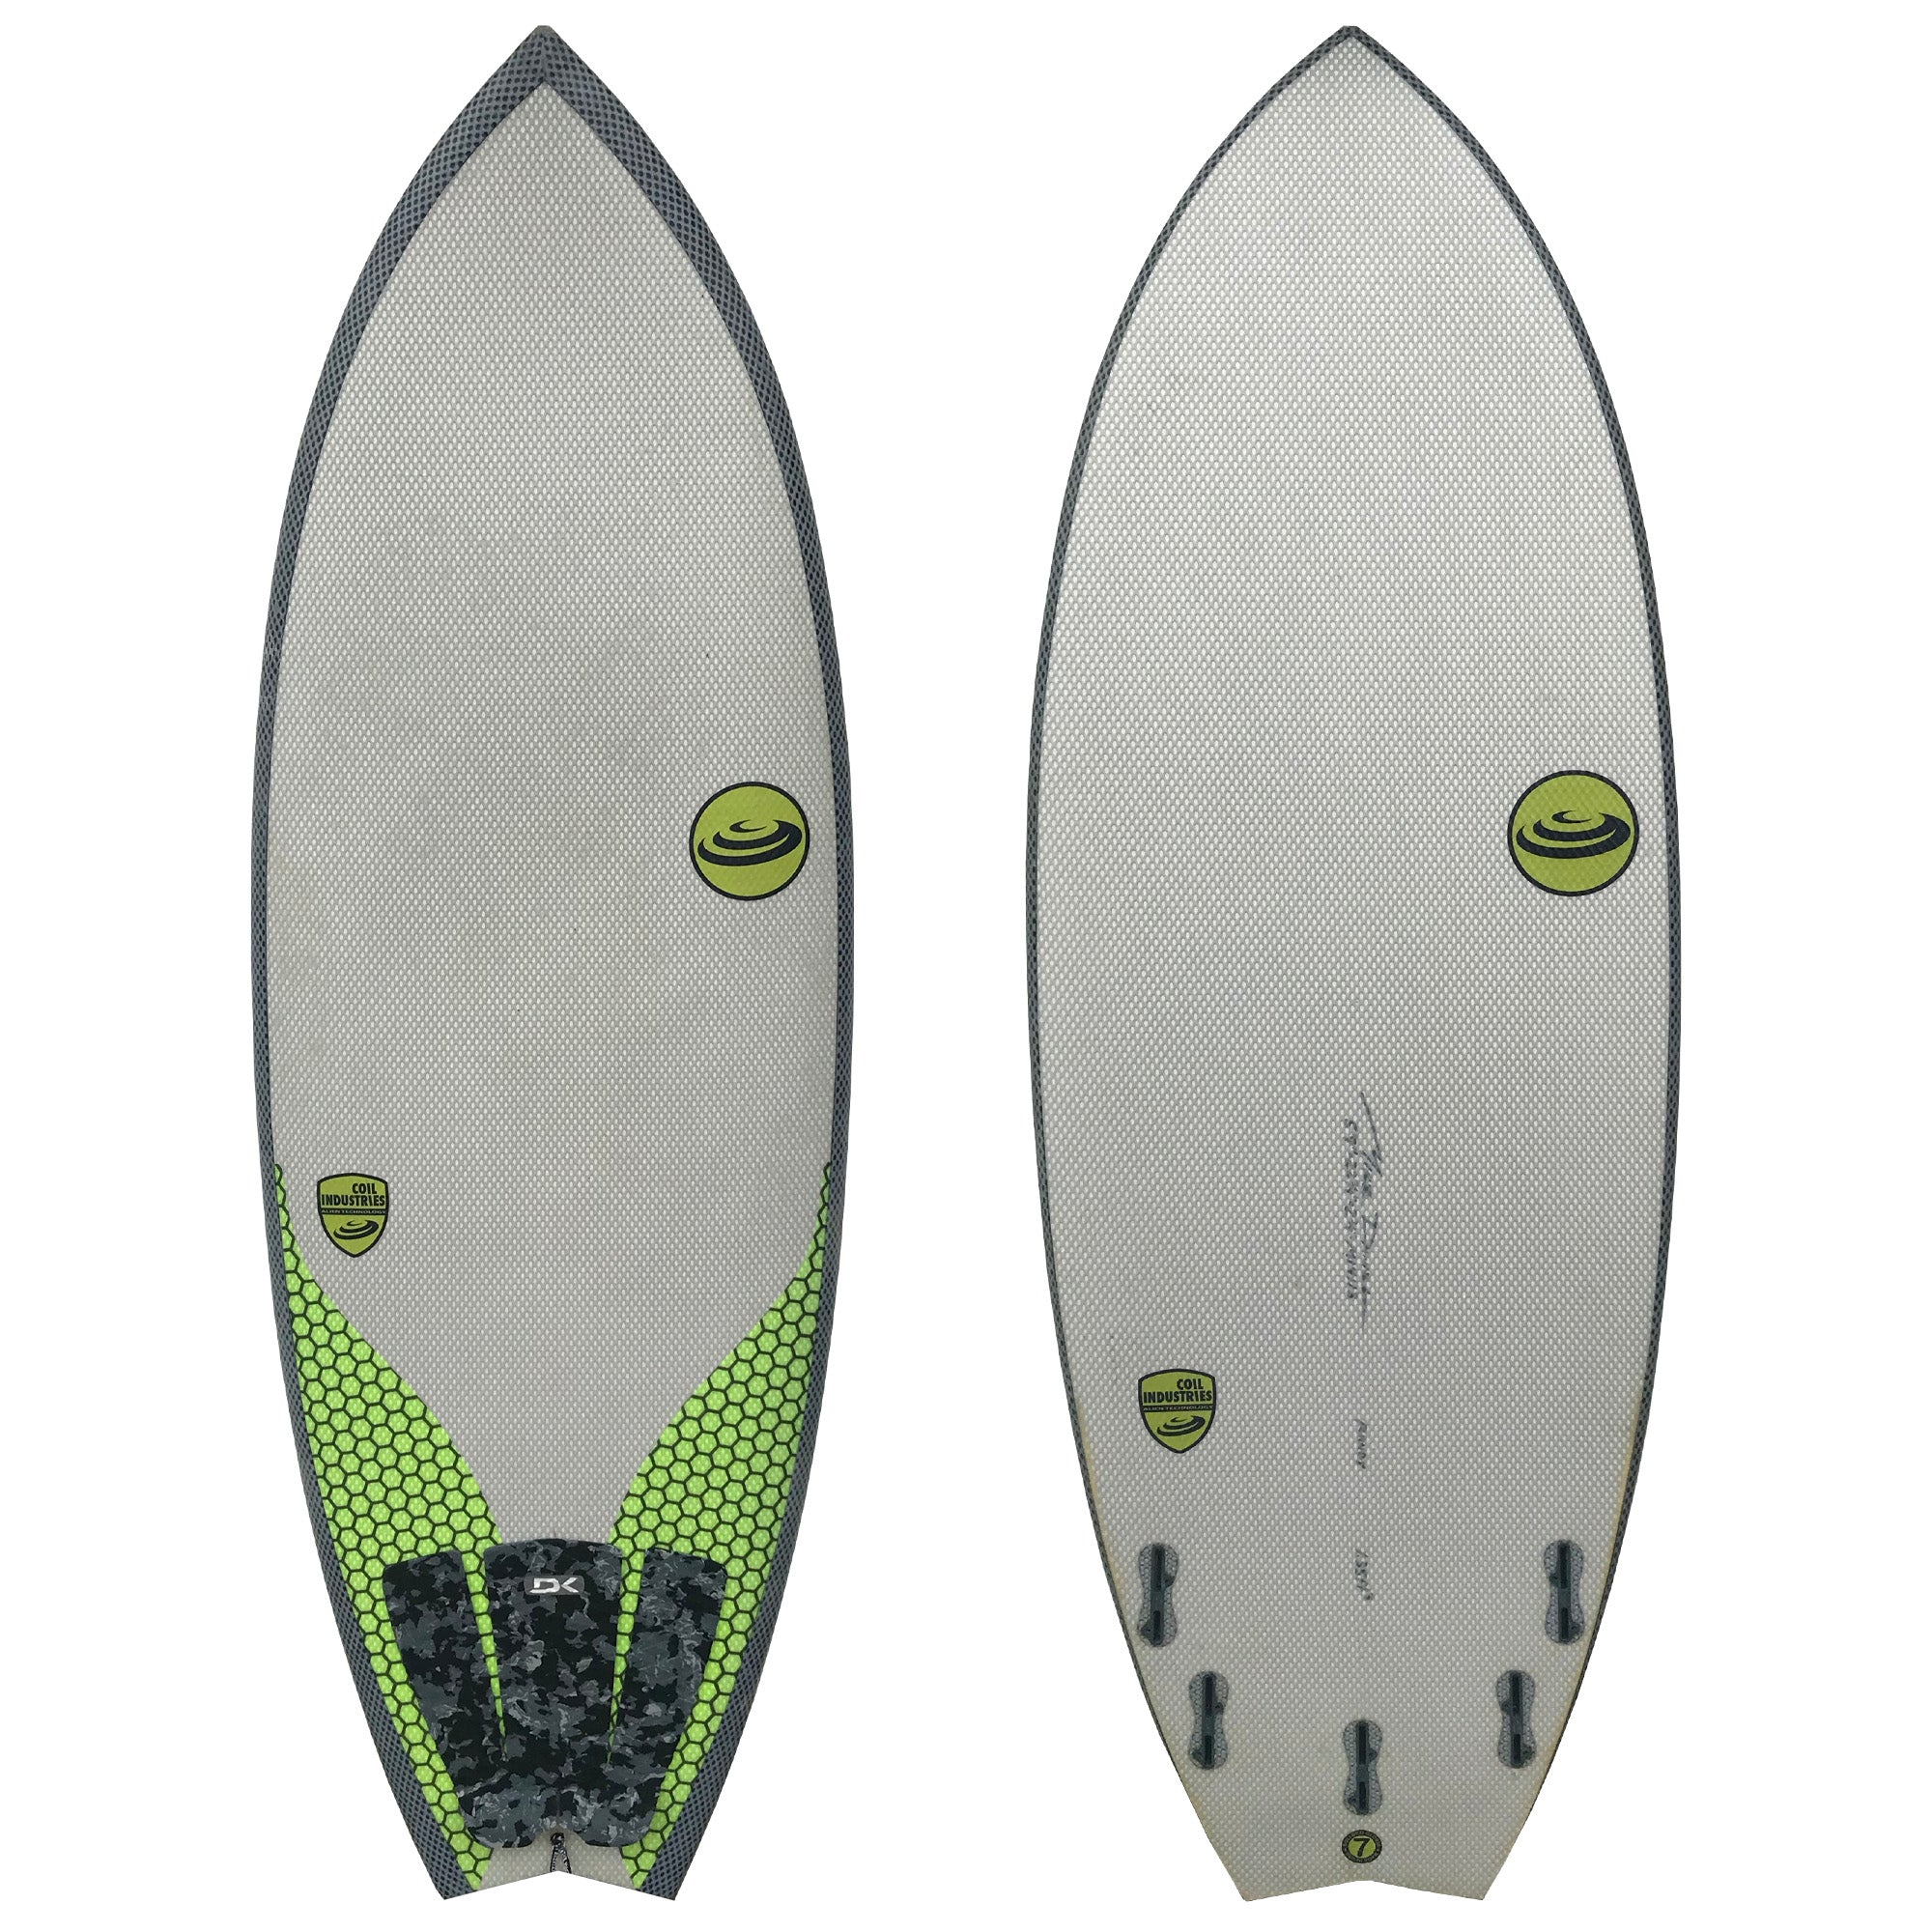 Coil Industries 5'9 Used Surfboard